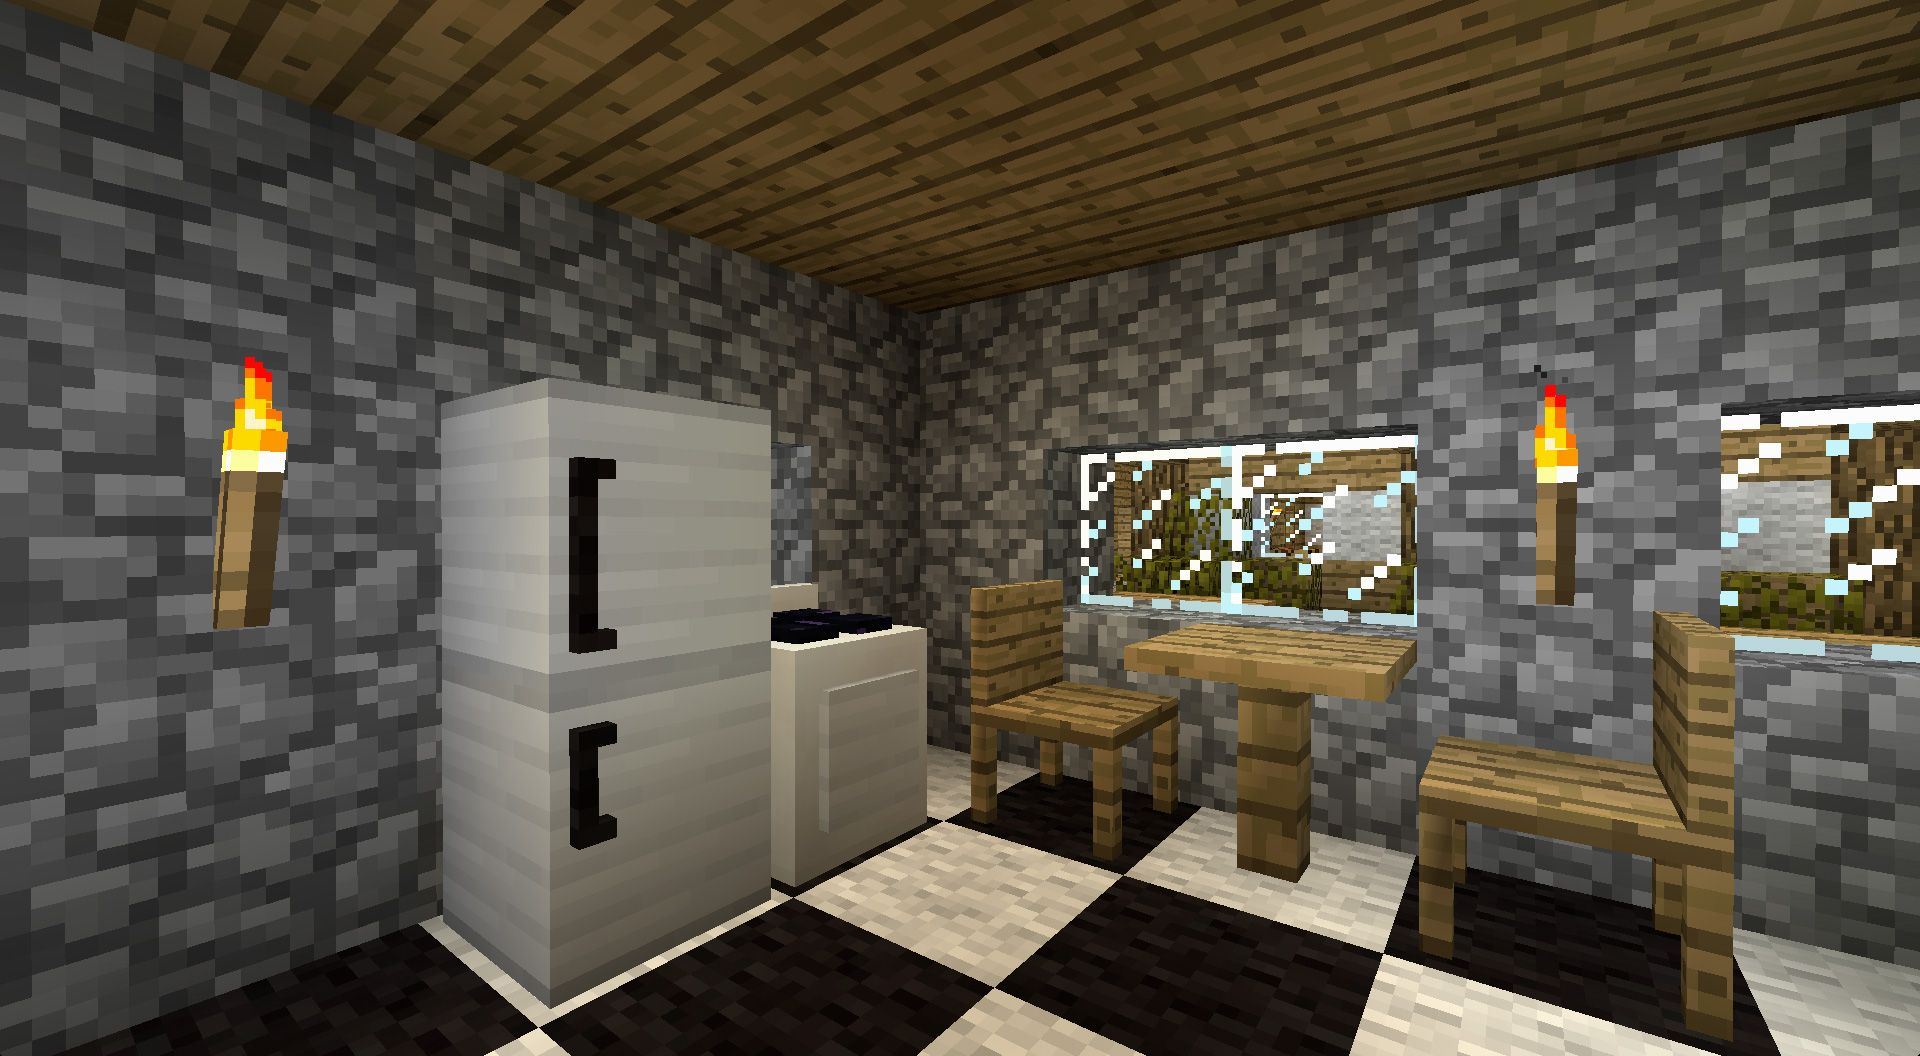 Furniture Mod Minecraft 1 7mr_crayfish Requirements Minecraft  # Muebles Minecraft